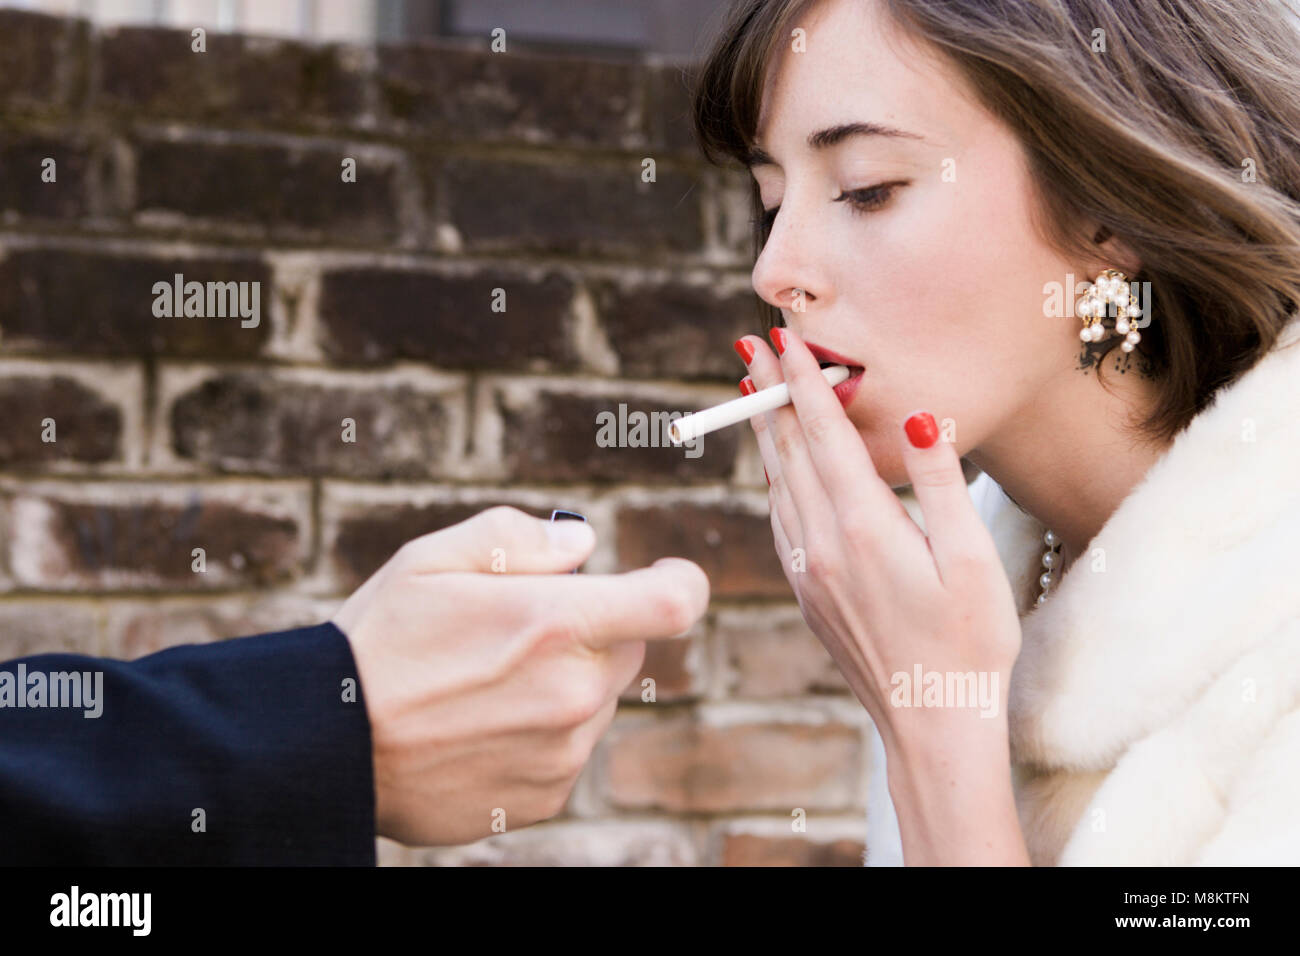 Lady Smoking A Cigarette Stock Photos & Lady Smoking A Cigarette Stock Images - Alamy